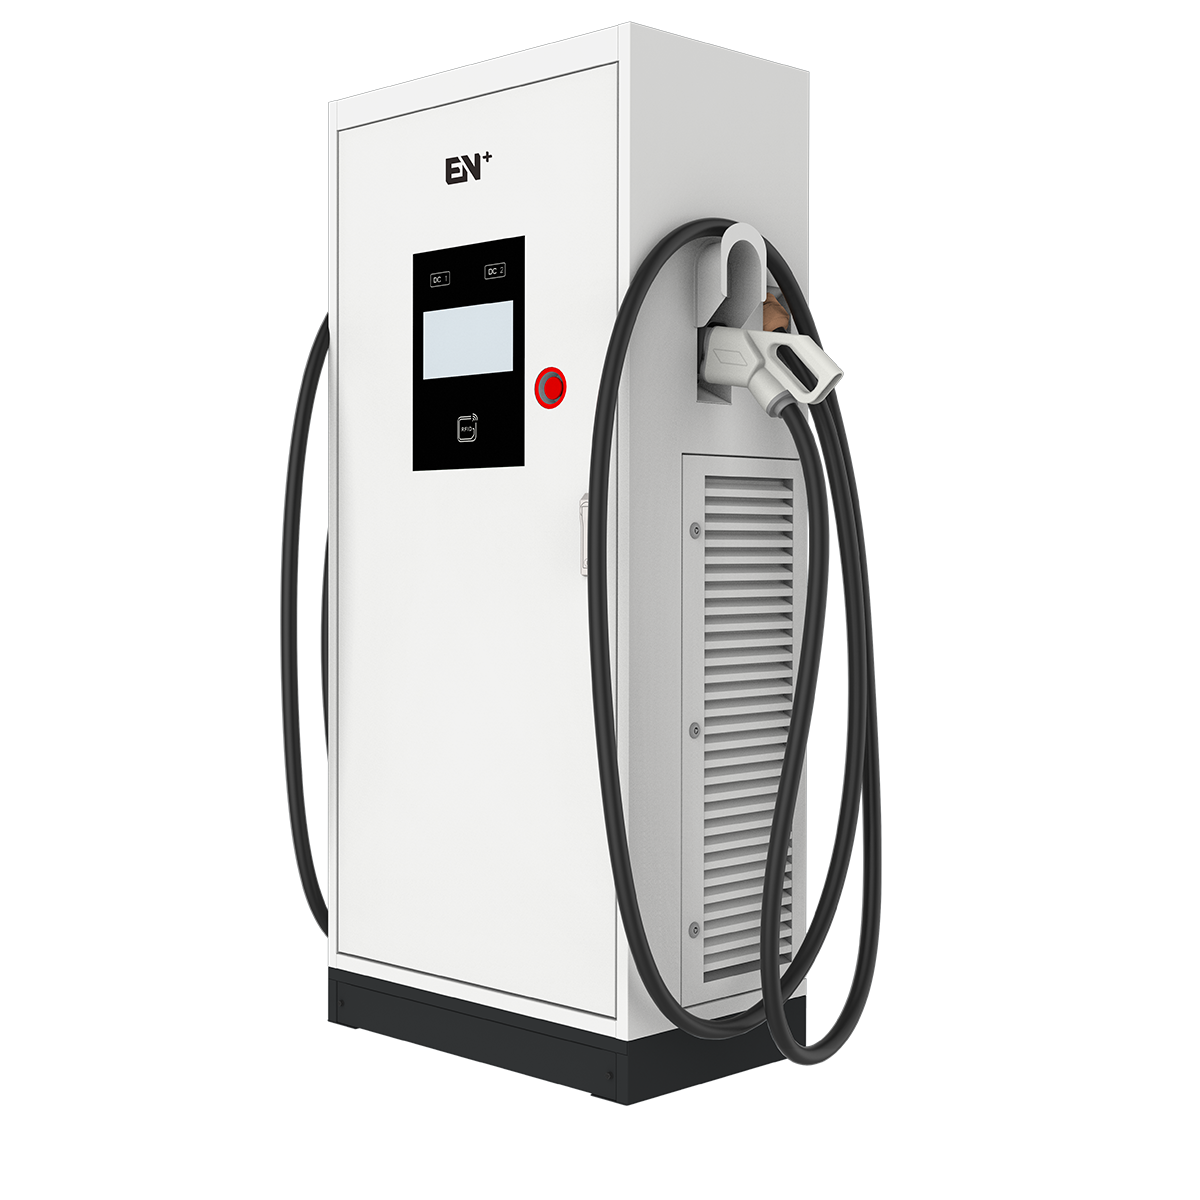 60kW DC Fast Charging Station for Electric Vehicle